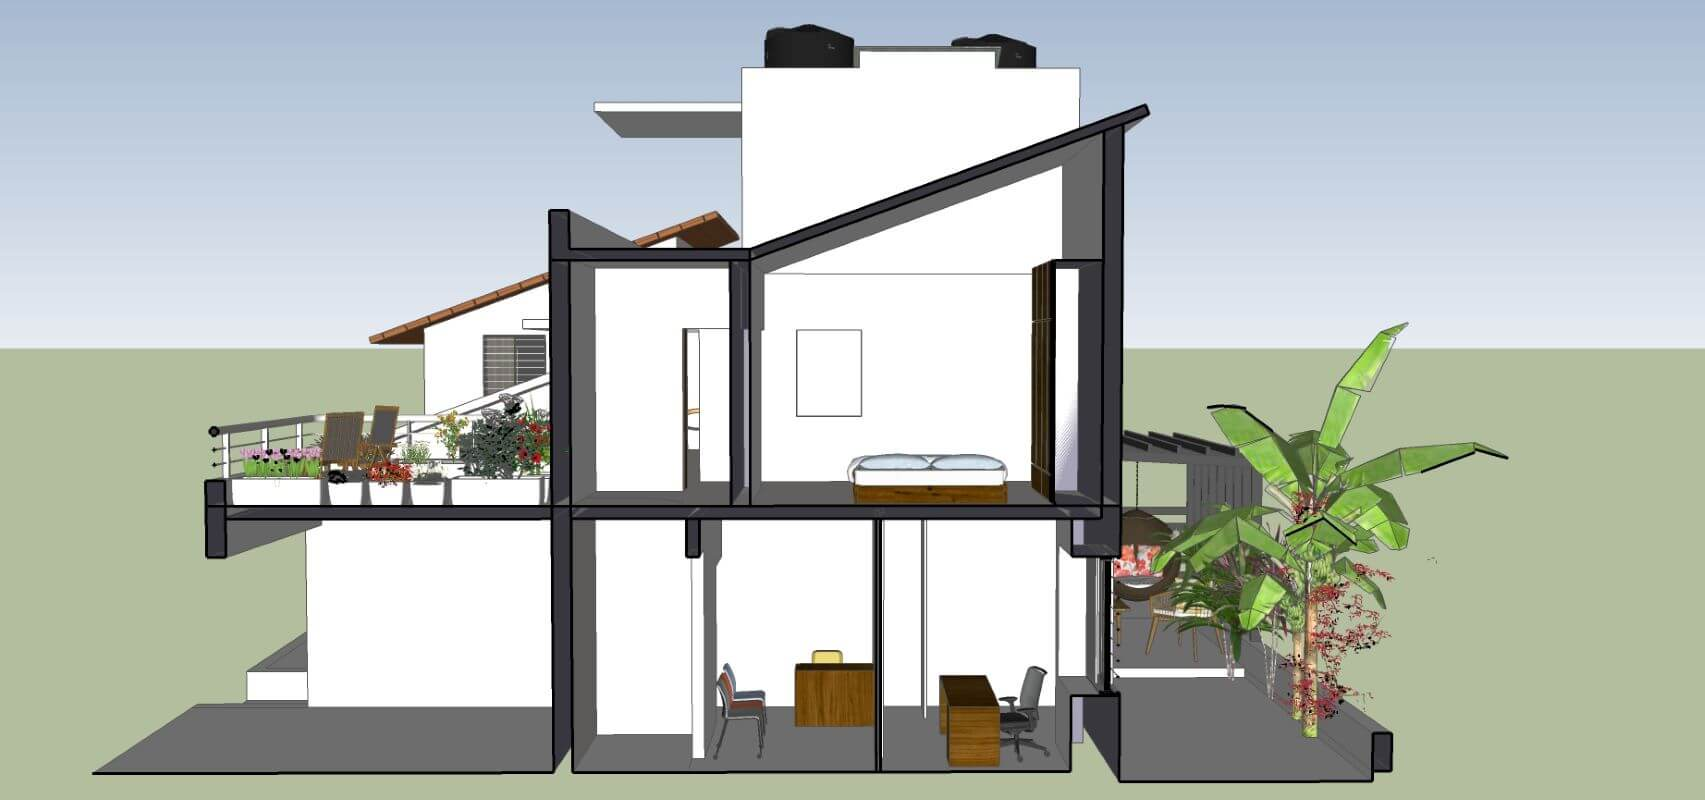 6. SECTION THOUGH CLINIC (G.F.) & TERRACE + GUEST BEDROOM 2 (F.F.)